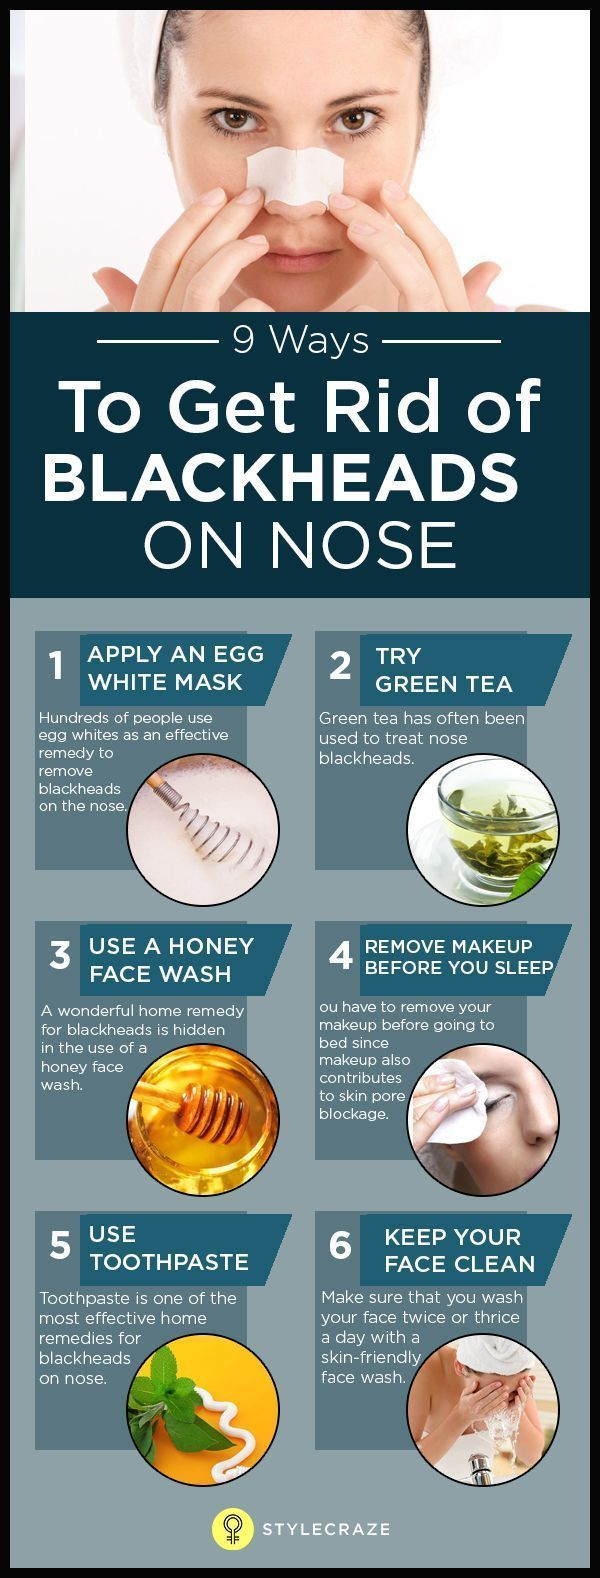 7 Simple Skin Care Tips Everyone Can Use | How To Remove Blackheads From Nose At Home | Skin …